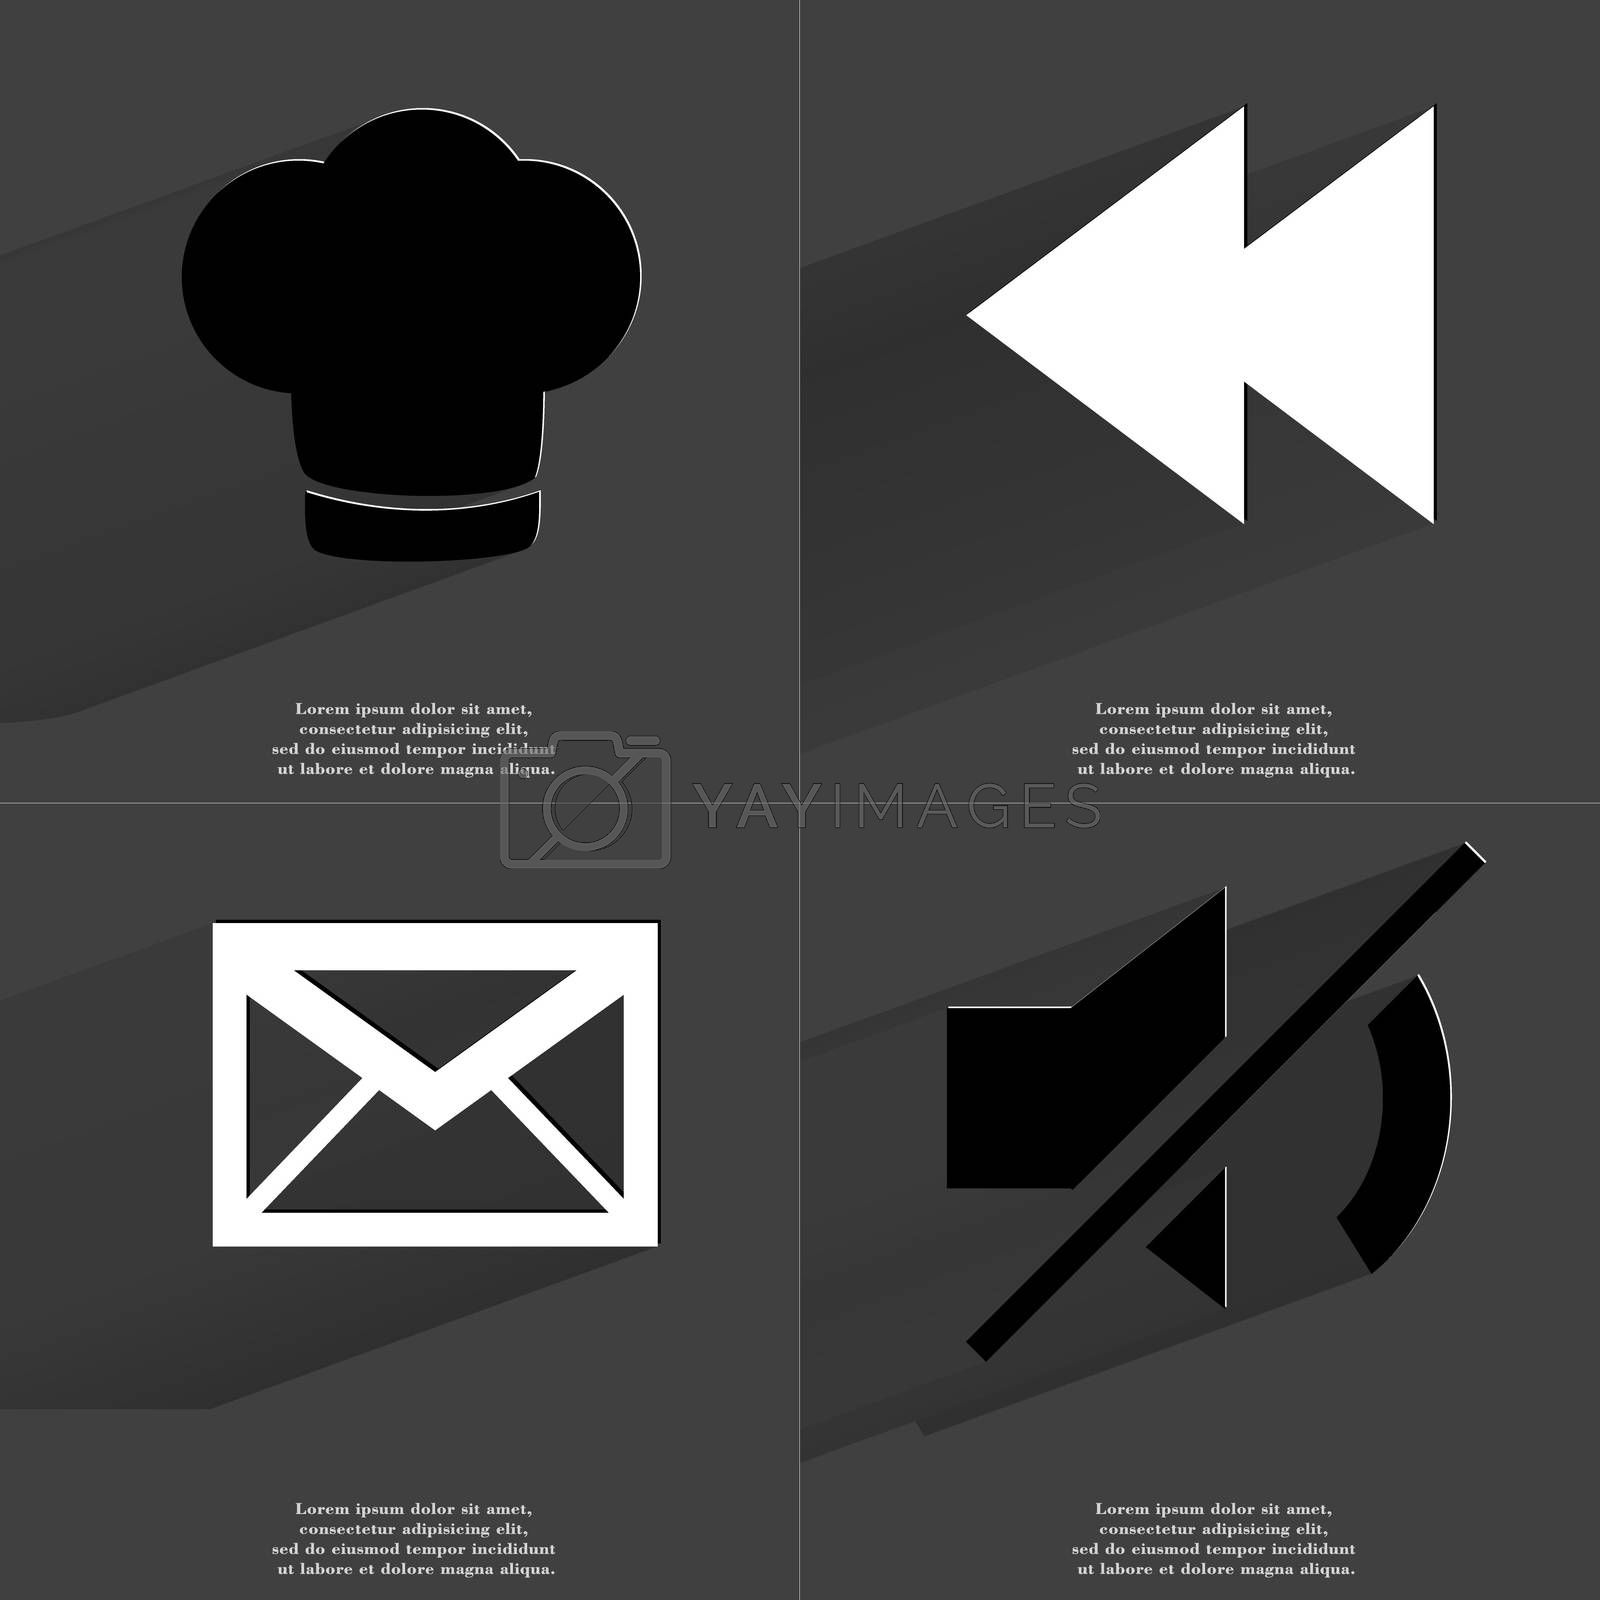 Coocking hat, Two arrows media icon, Message, Mute icon. Symbols with long shadow. Flat design by serhii_lohvyniuk